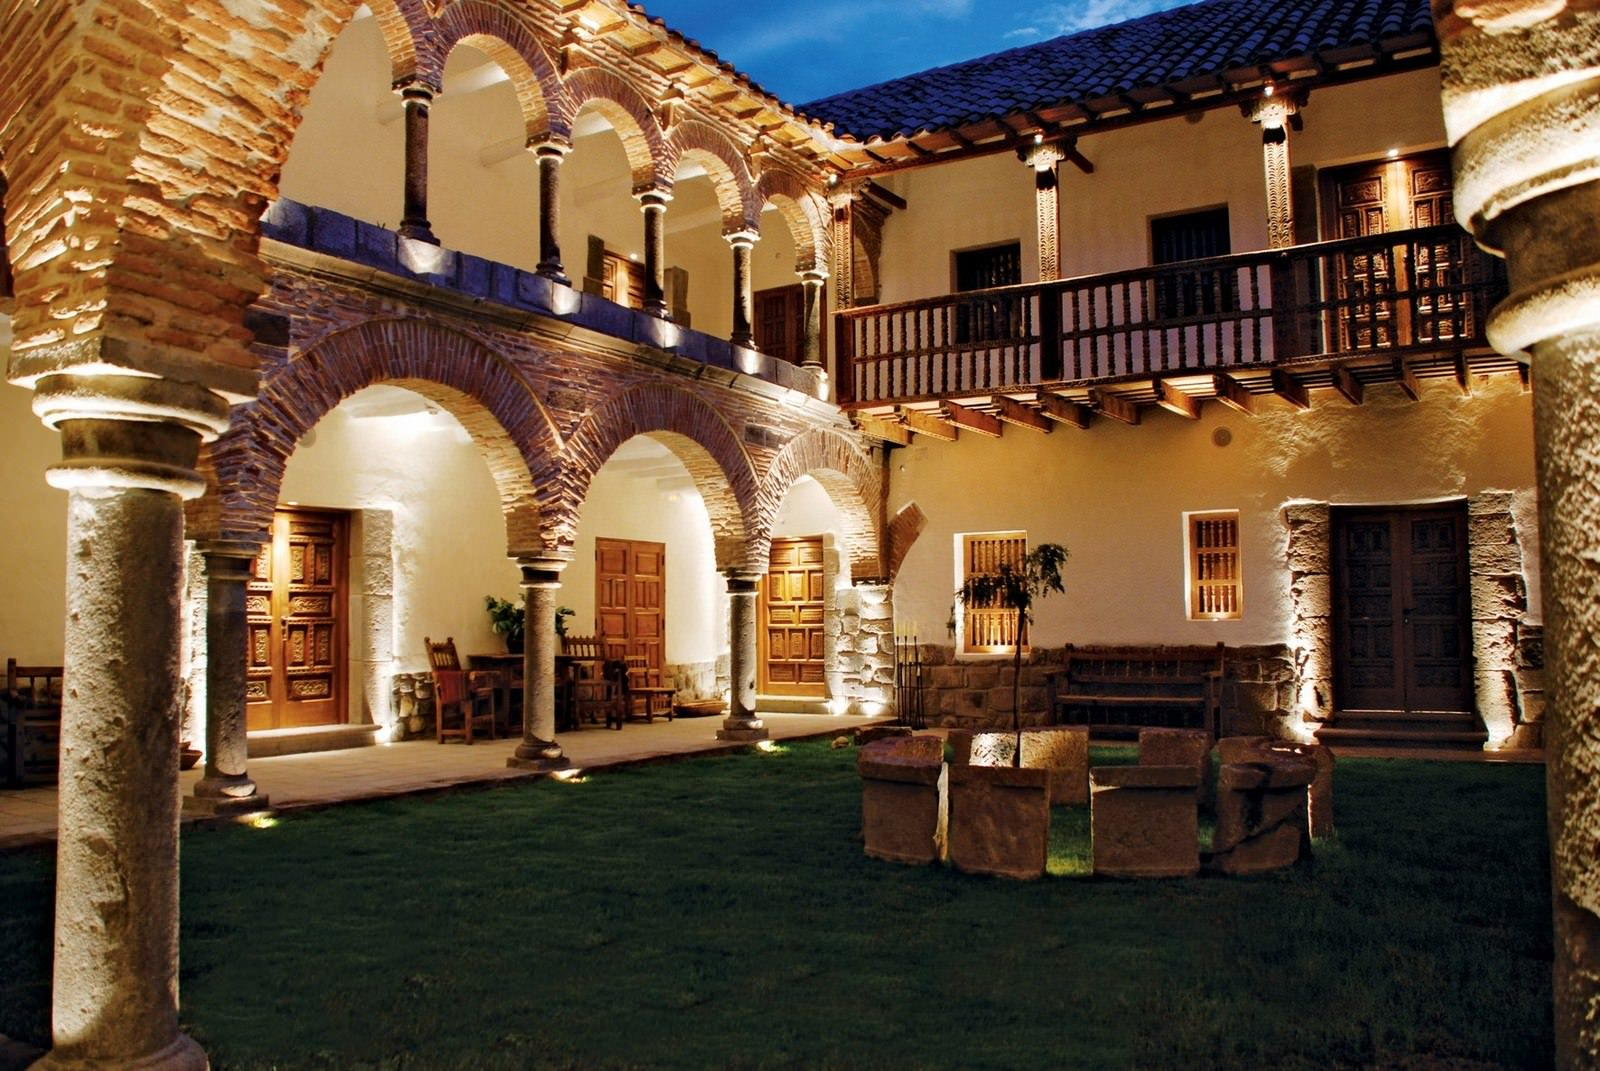 Best List of Luxury Hotels in Cuzco, Peru - Inkaterra La Casona